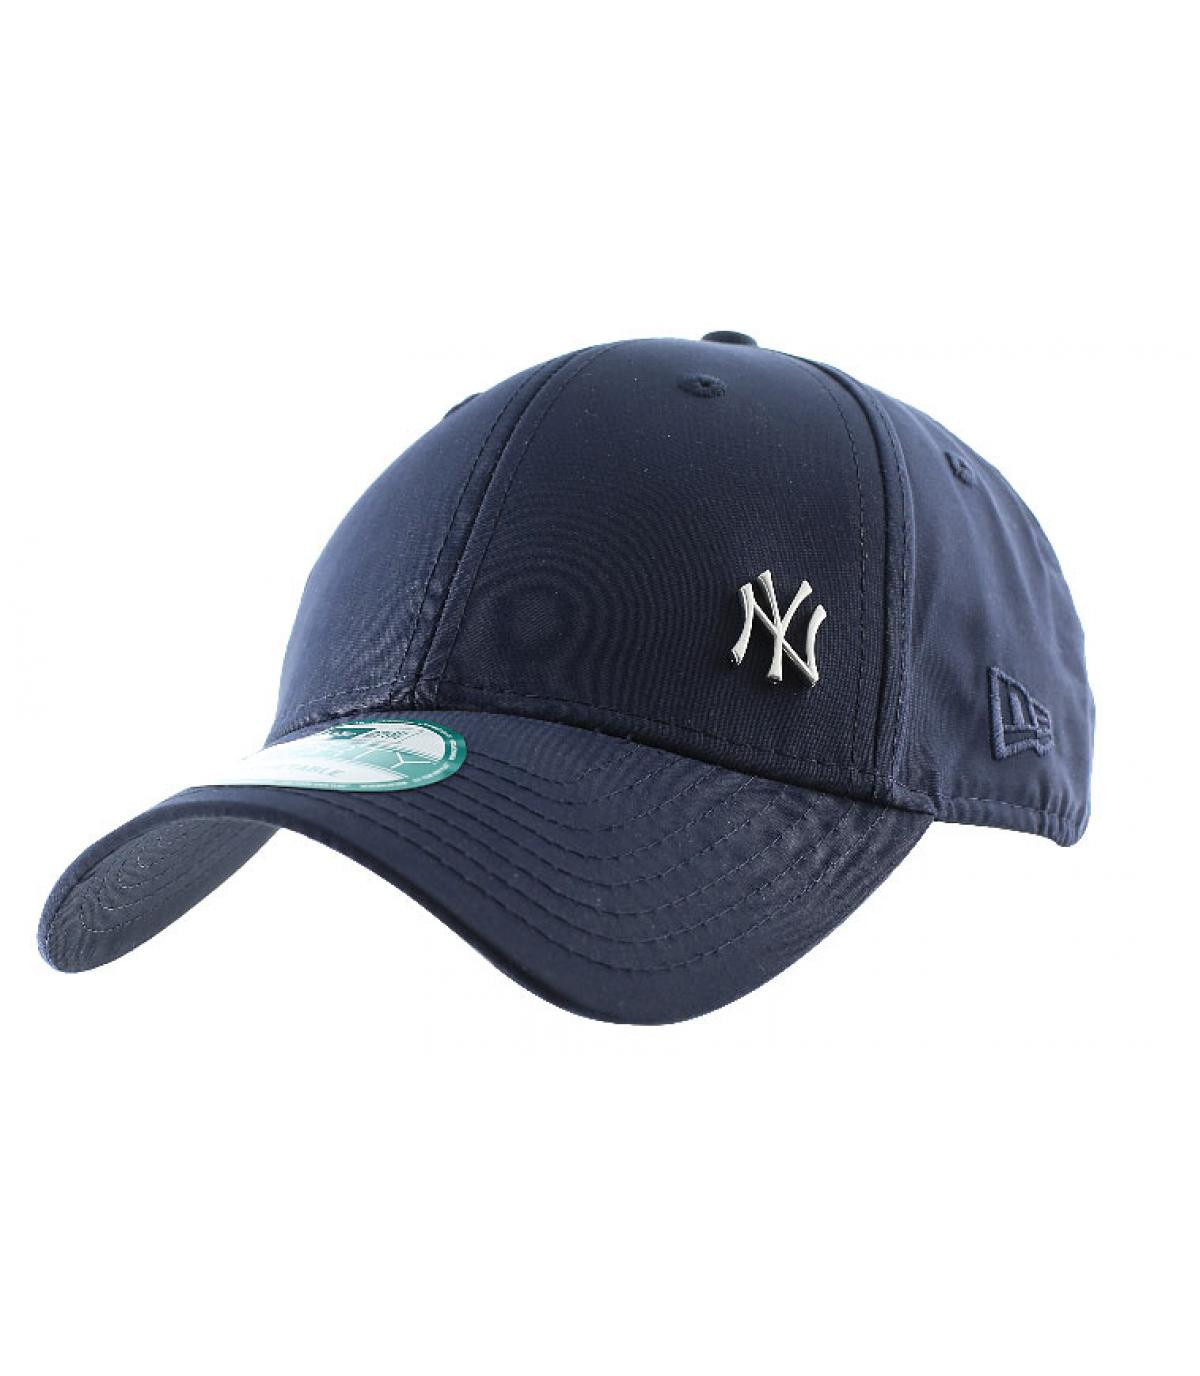 Détails Casquette NY flawless navy - image 2